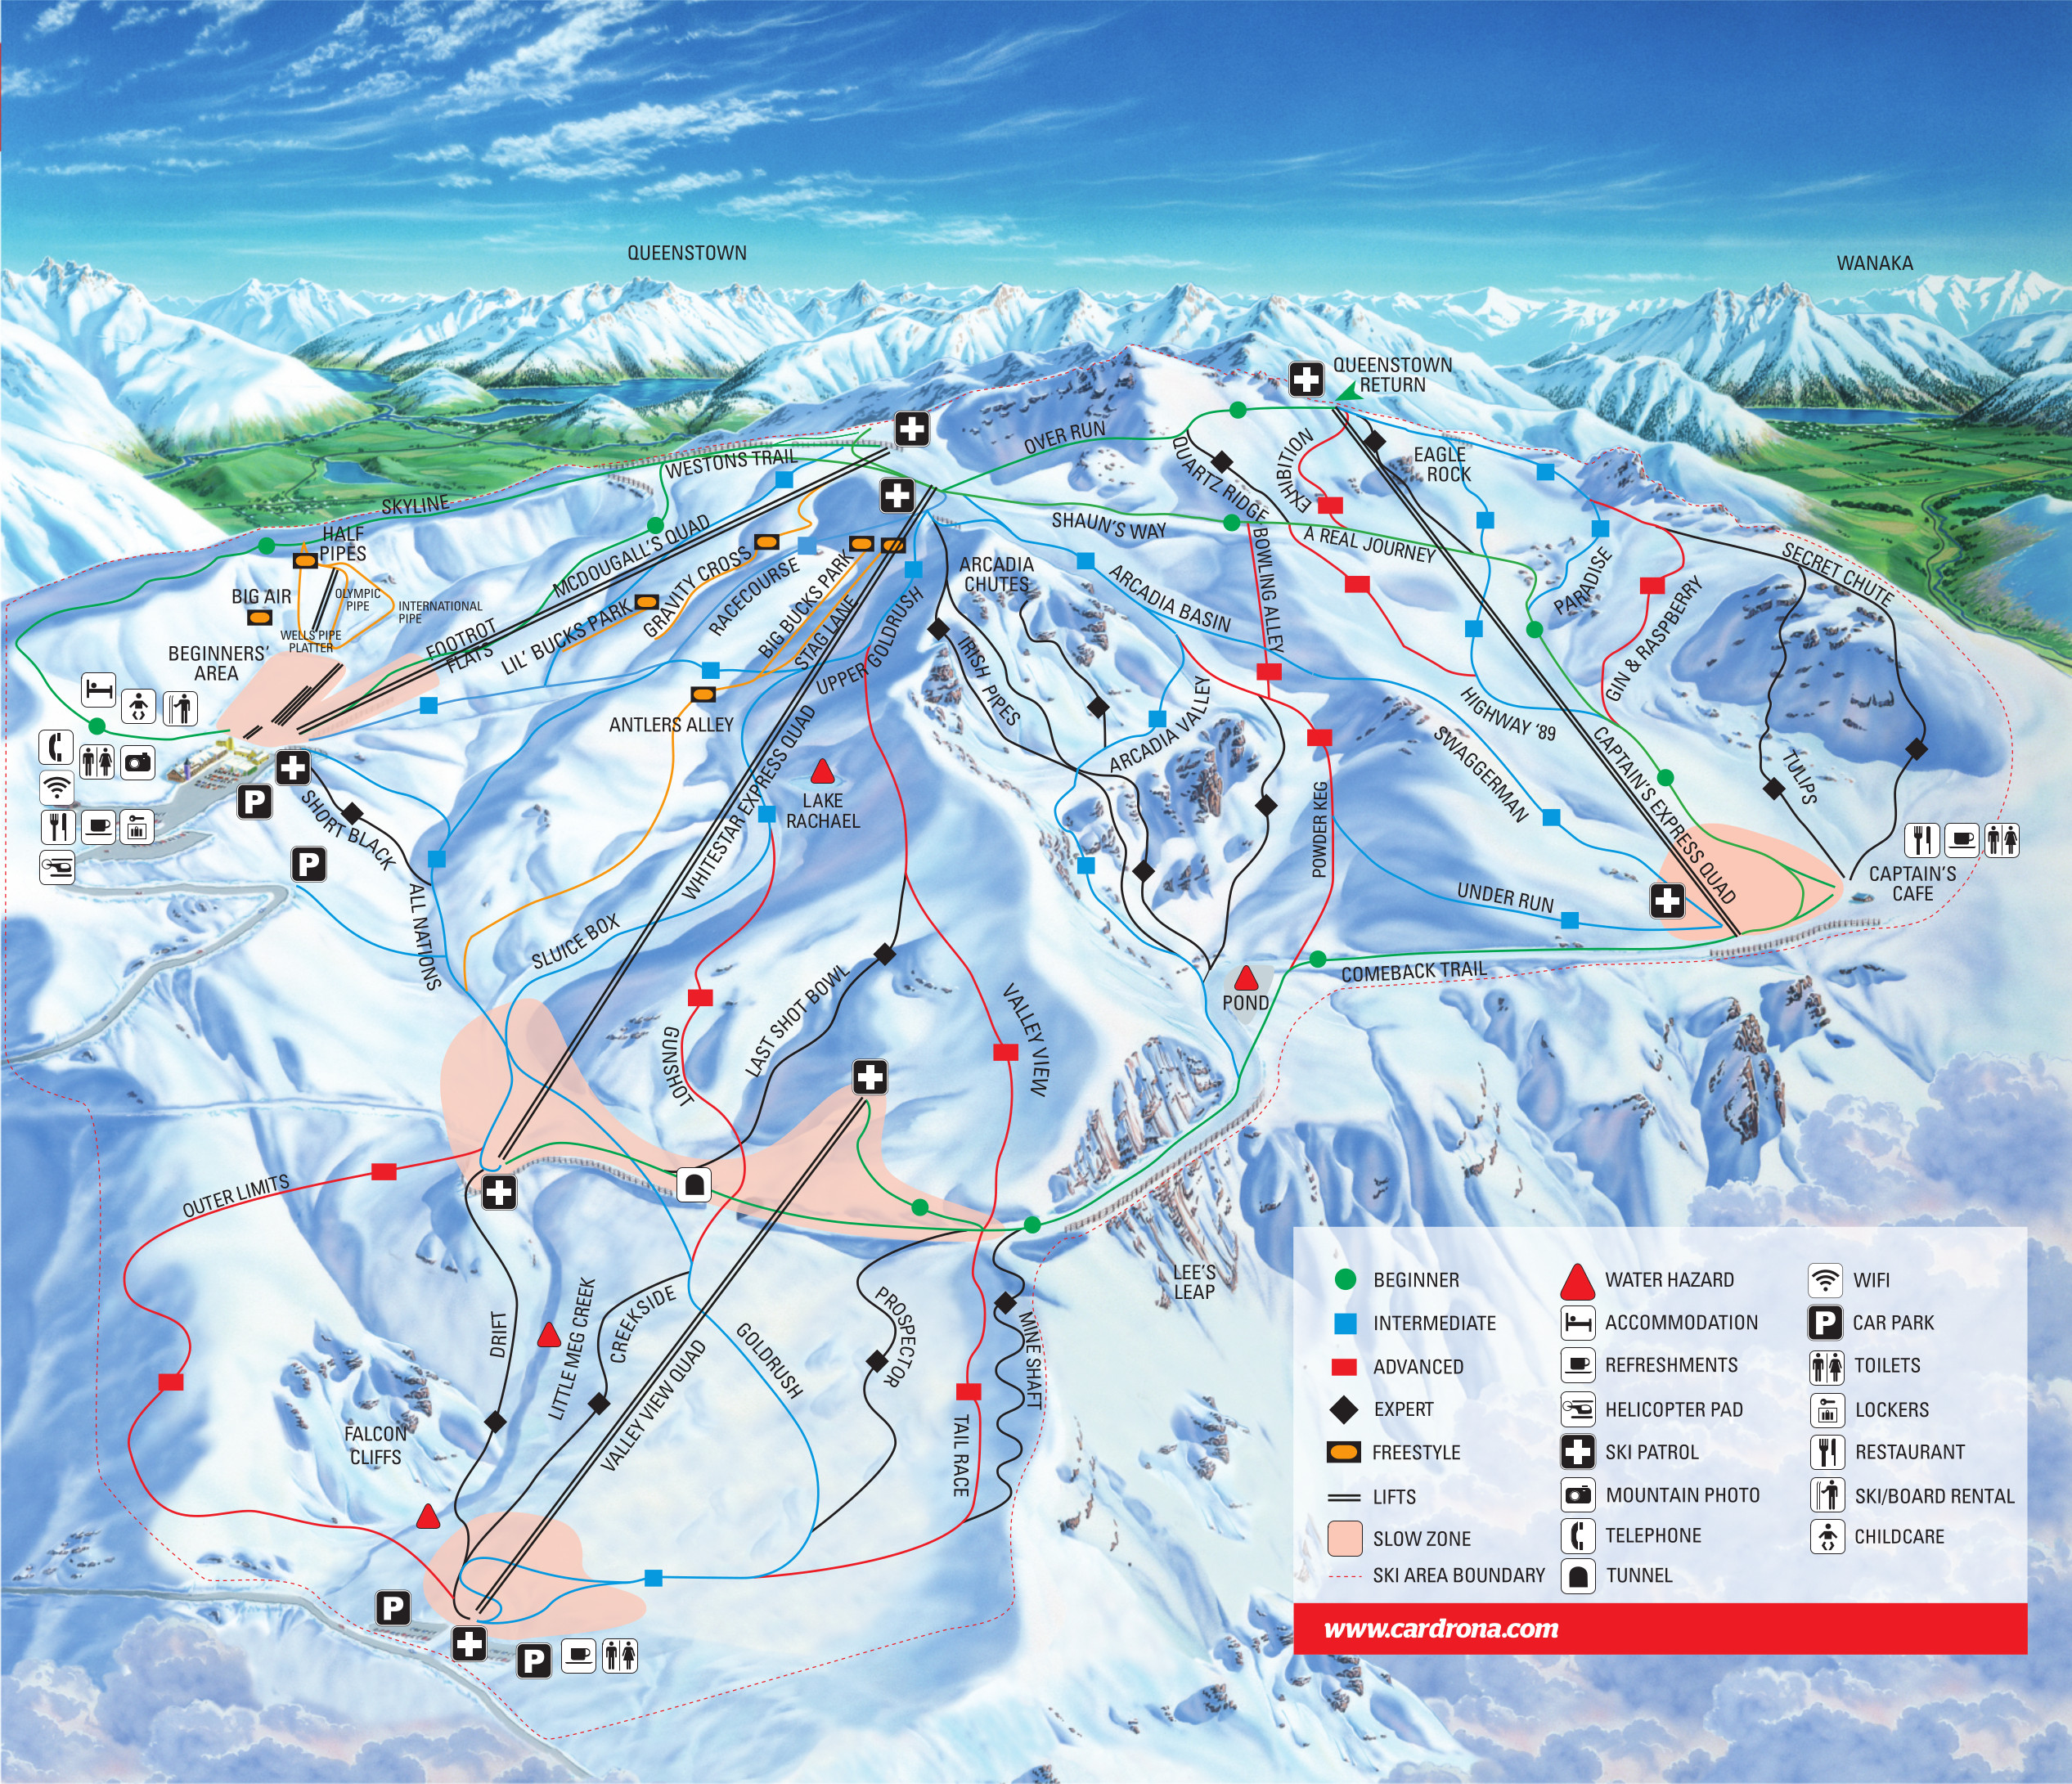 Cardrona piste map free downloadable piste maps cardrona piste map gumiabroncs Images